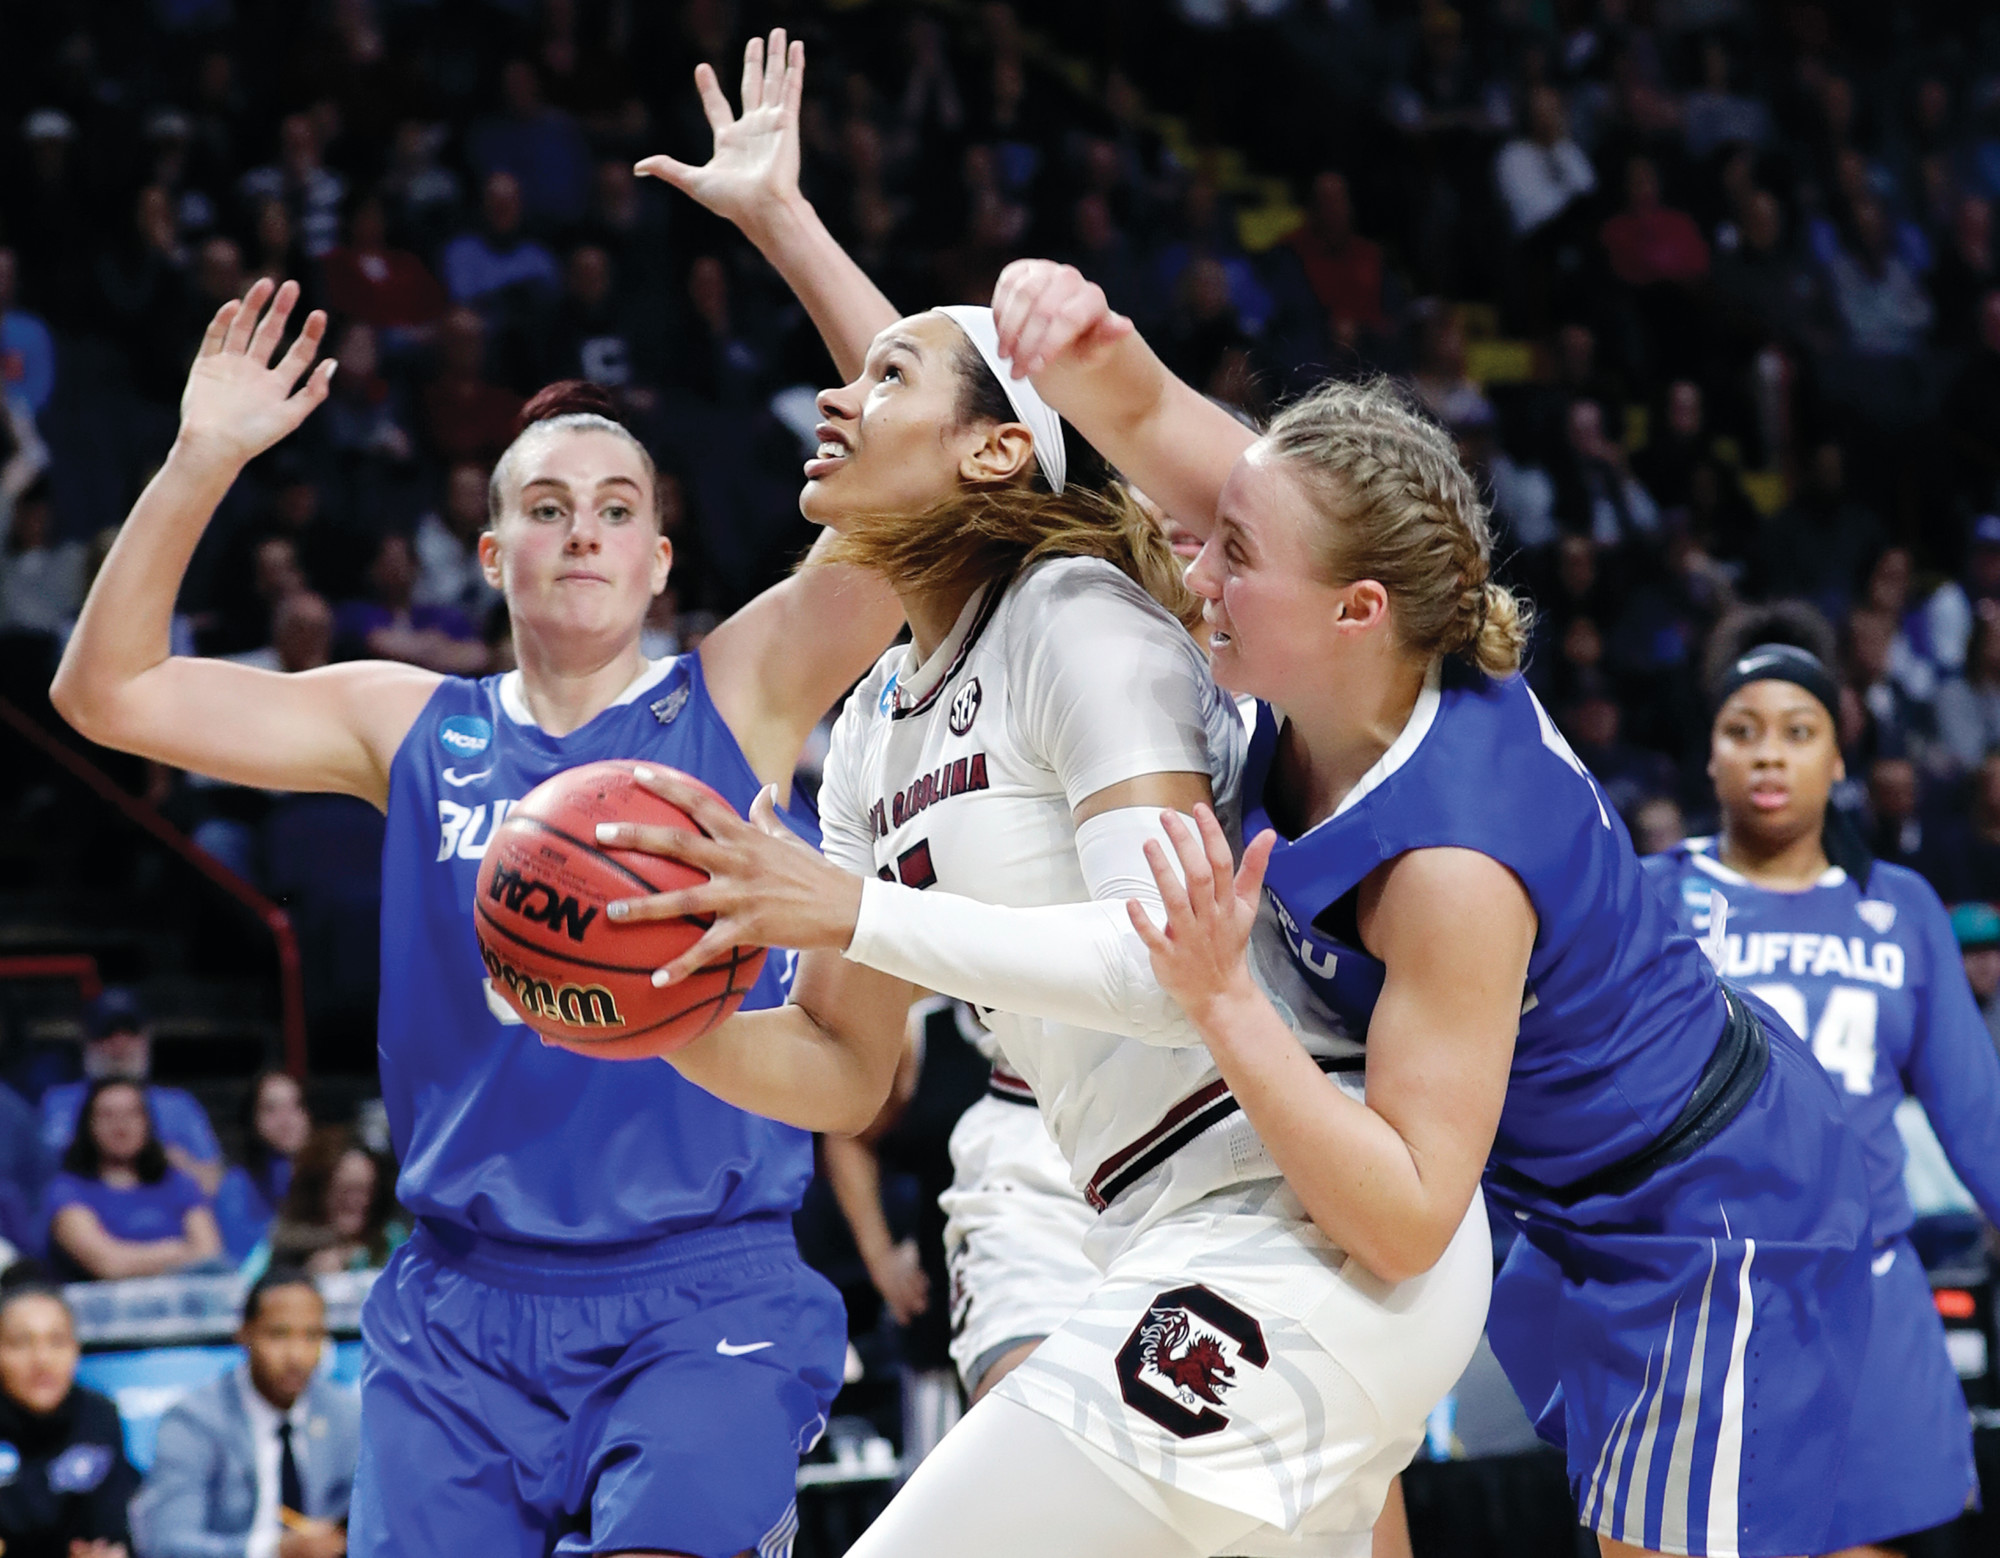 South Carolina's Alexis Jennings, center, tries to go up for a shot between Buffalo's Katherine Ups, right, and Cassie Oursler, left, during the Gamecocks' 79-63 victory on Saturday in a semifinal game in the Albany regional of the NCAA tournament in Albany, N.Y. Defending national champion USC will face top-ranked Connecticut on Monday in the regional final.